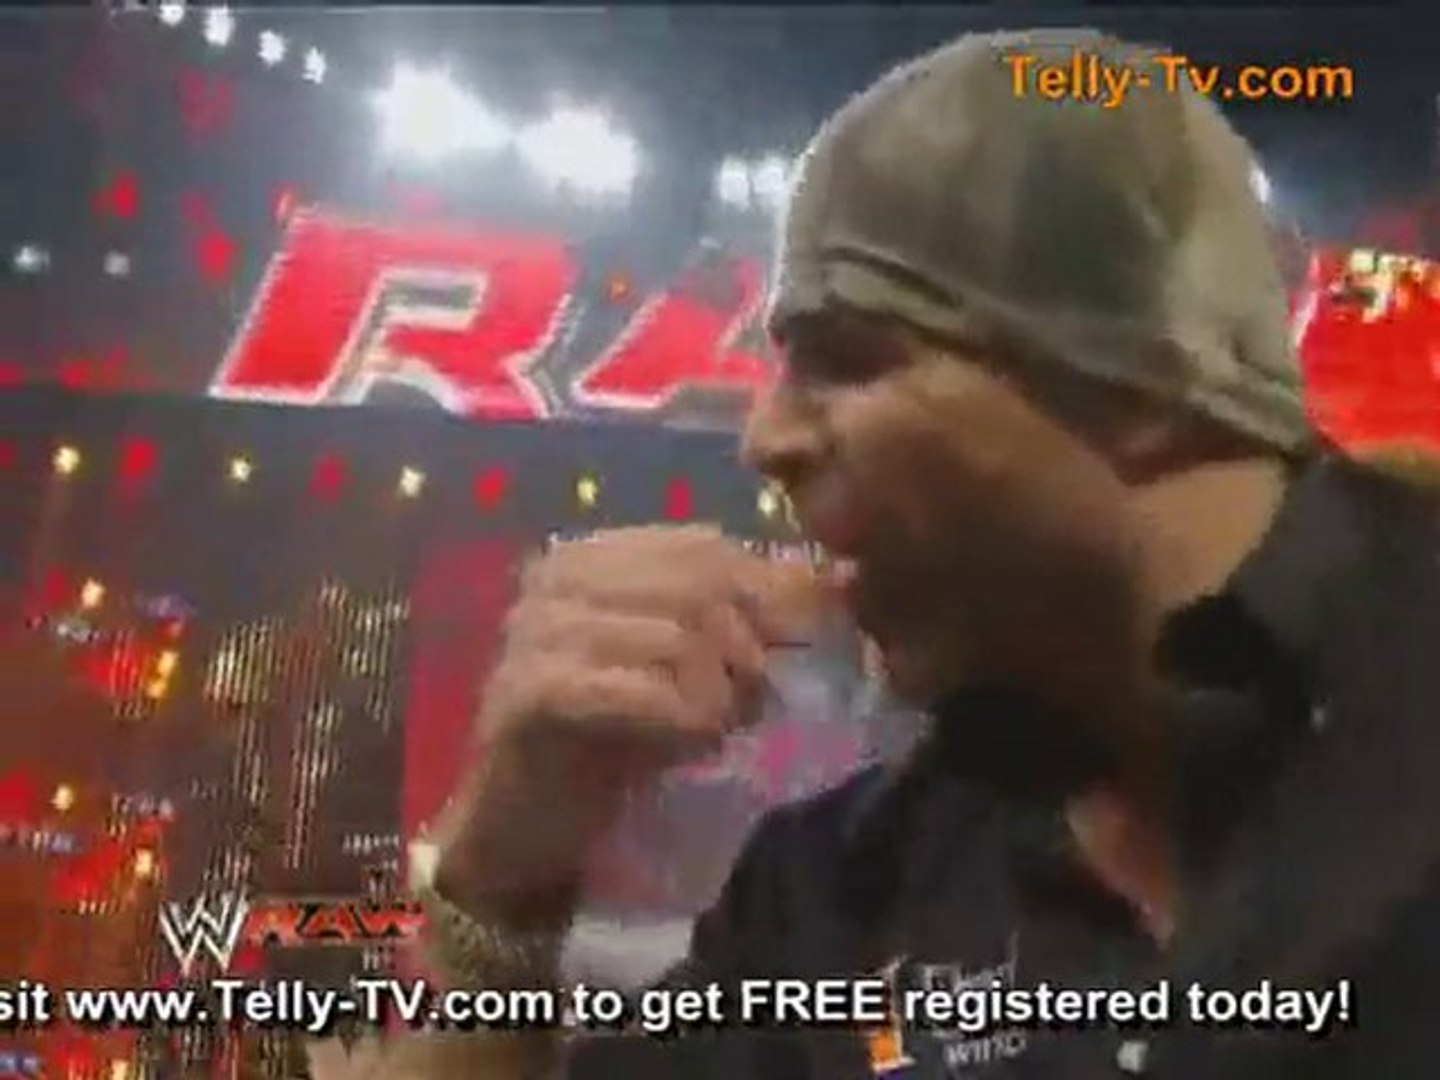 Telly-TV.com - WWE Bottom Line - 15/1/2011 Part 3/3 (HQ)